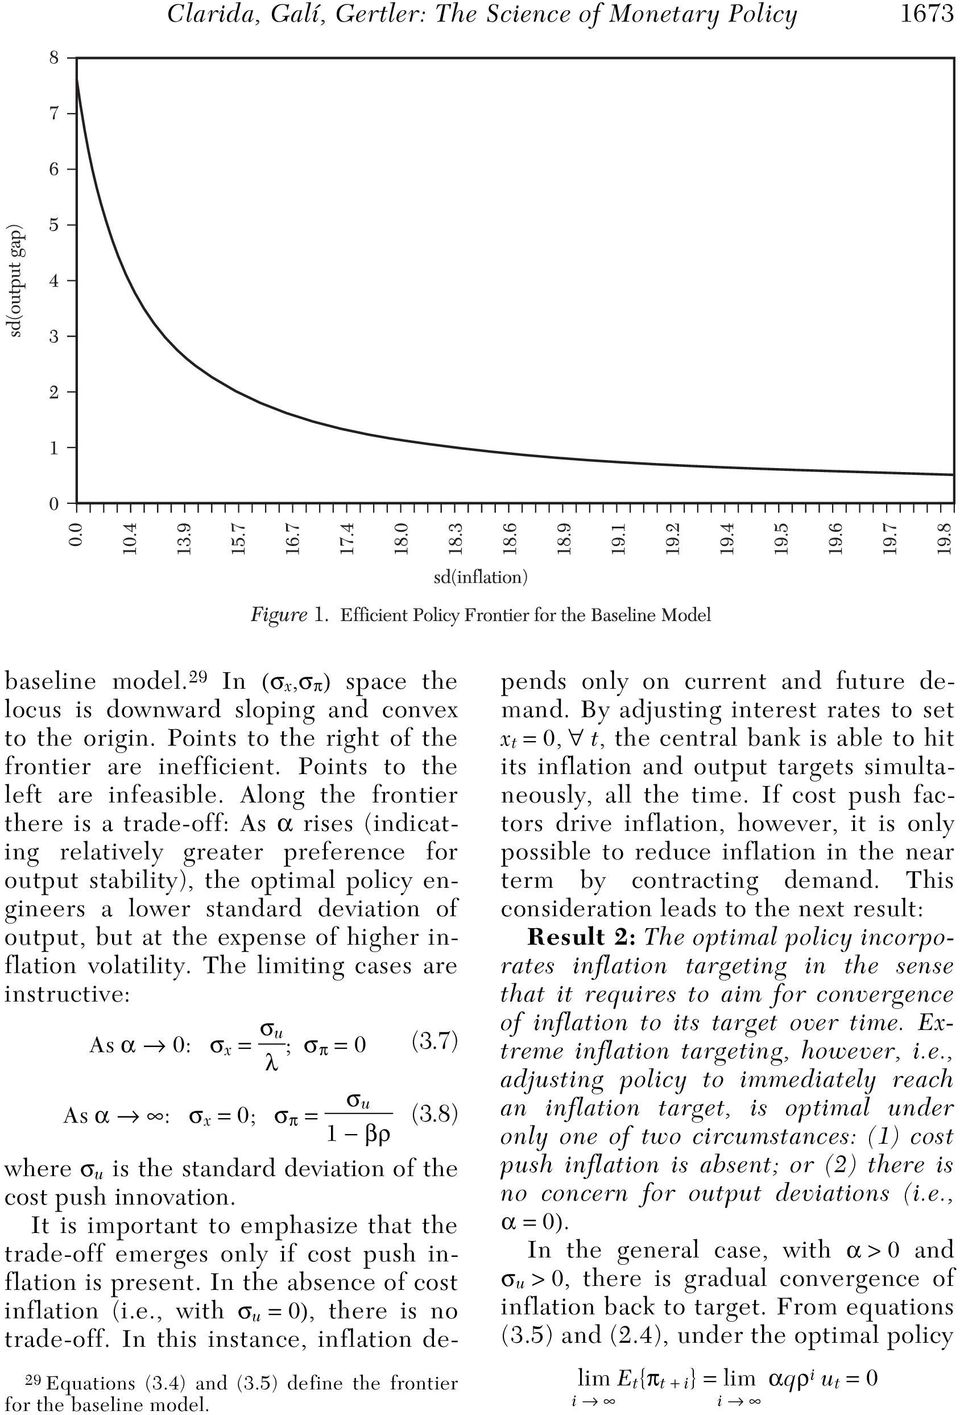 Along the frontier there is a trade-off: As α rises (indicating relatively greater preference for output stability), the optimal policy engineers a lower standard deviation of output, but at the